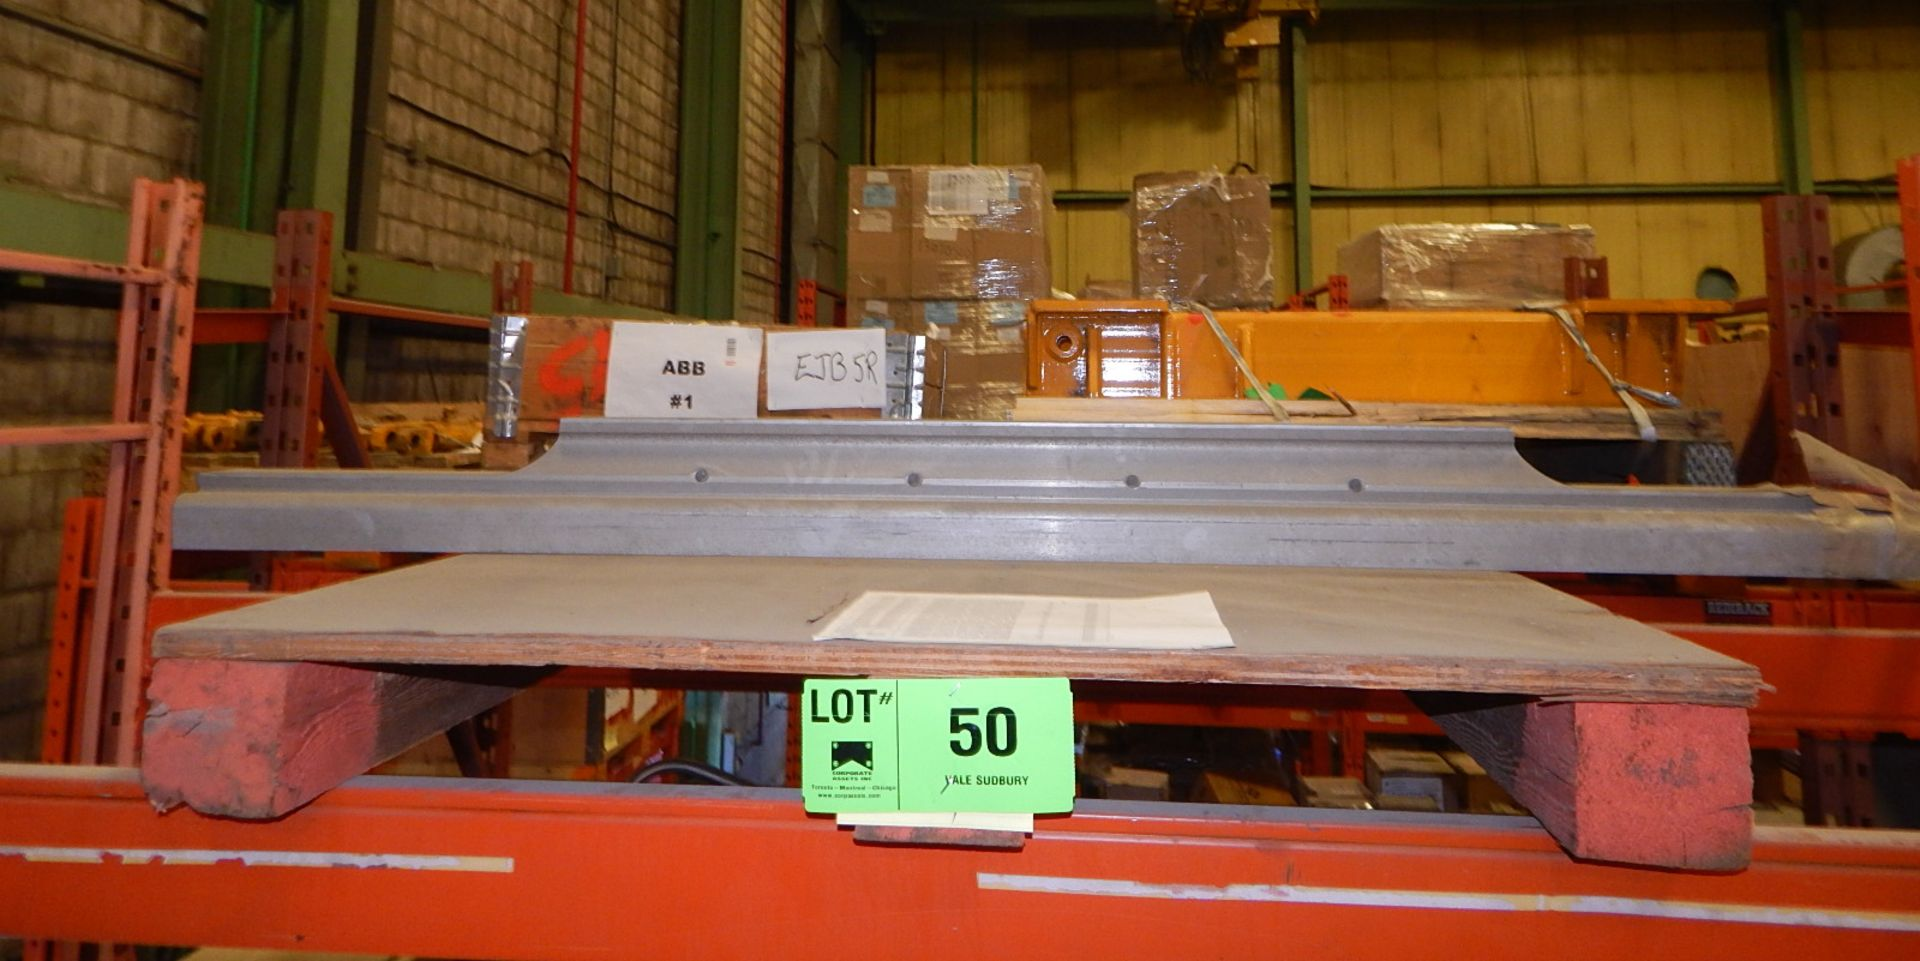 Lot 50 - LOT/ FEED BRACKET AND WEAR PLATES (CMD)